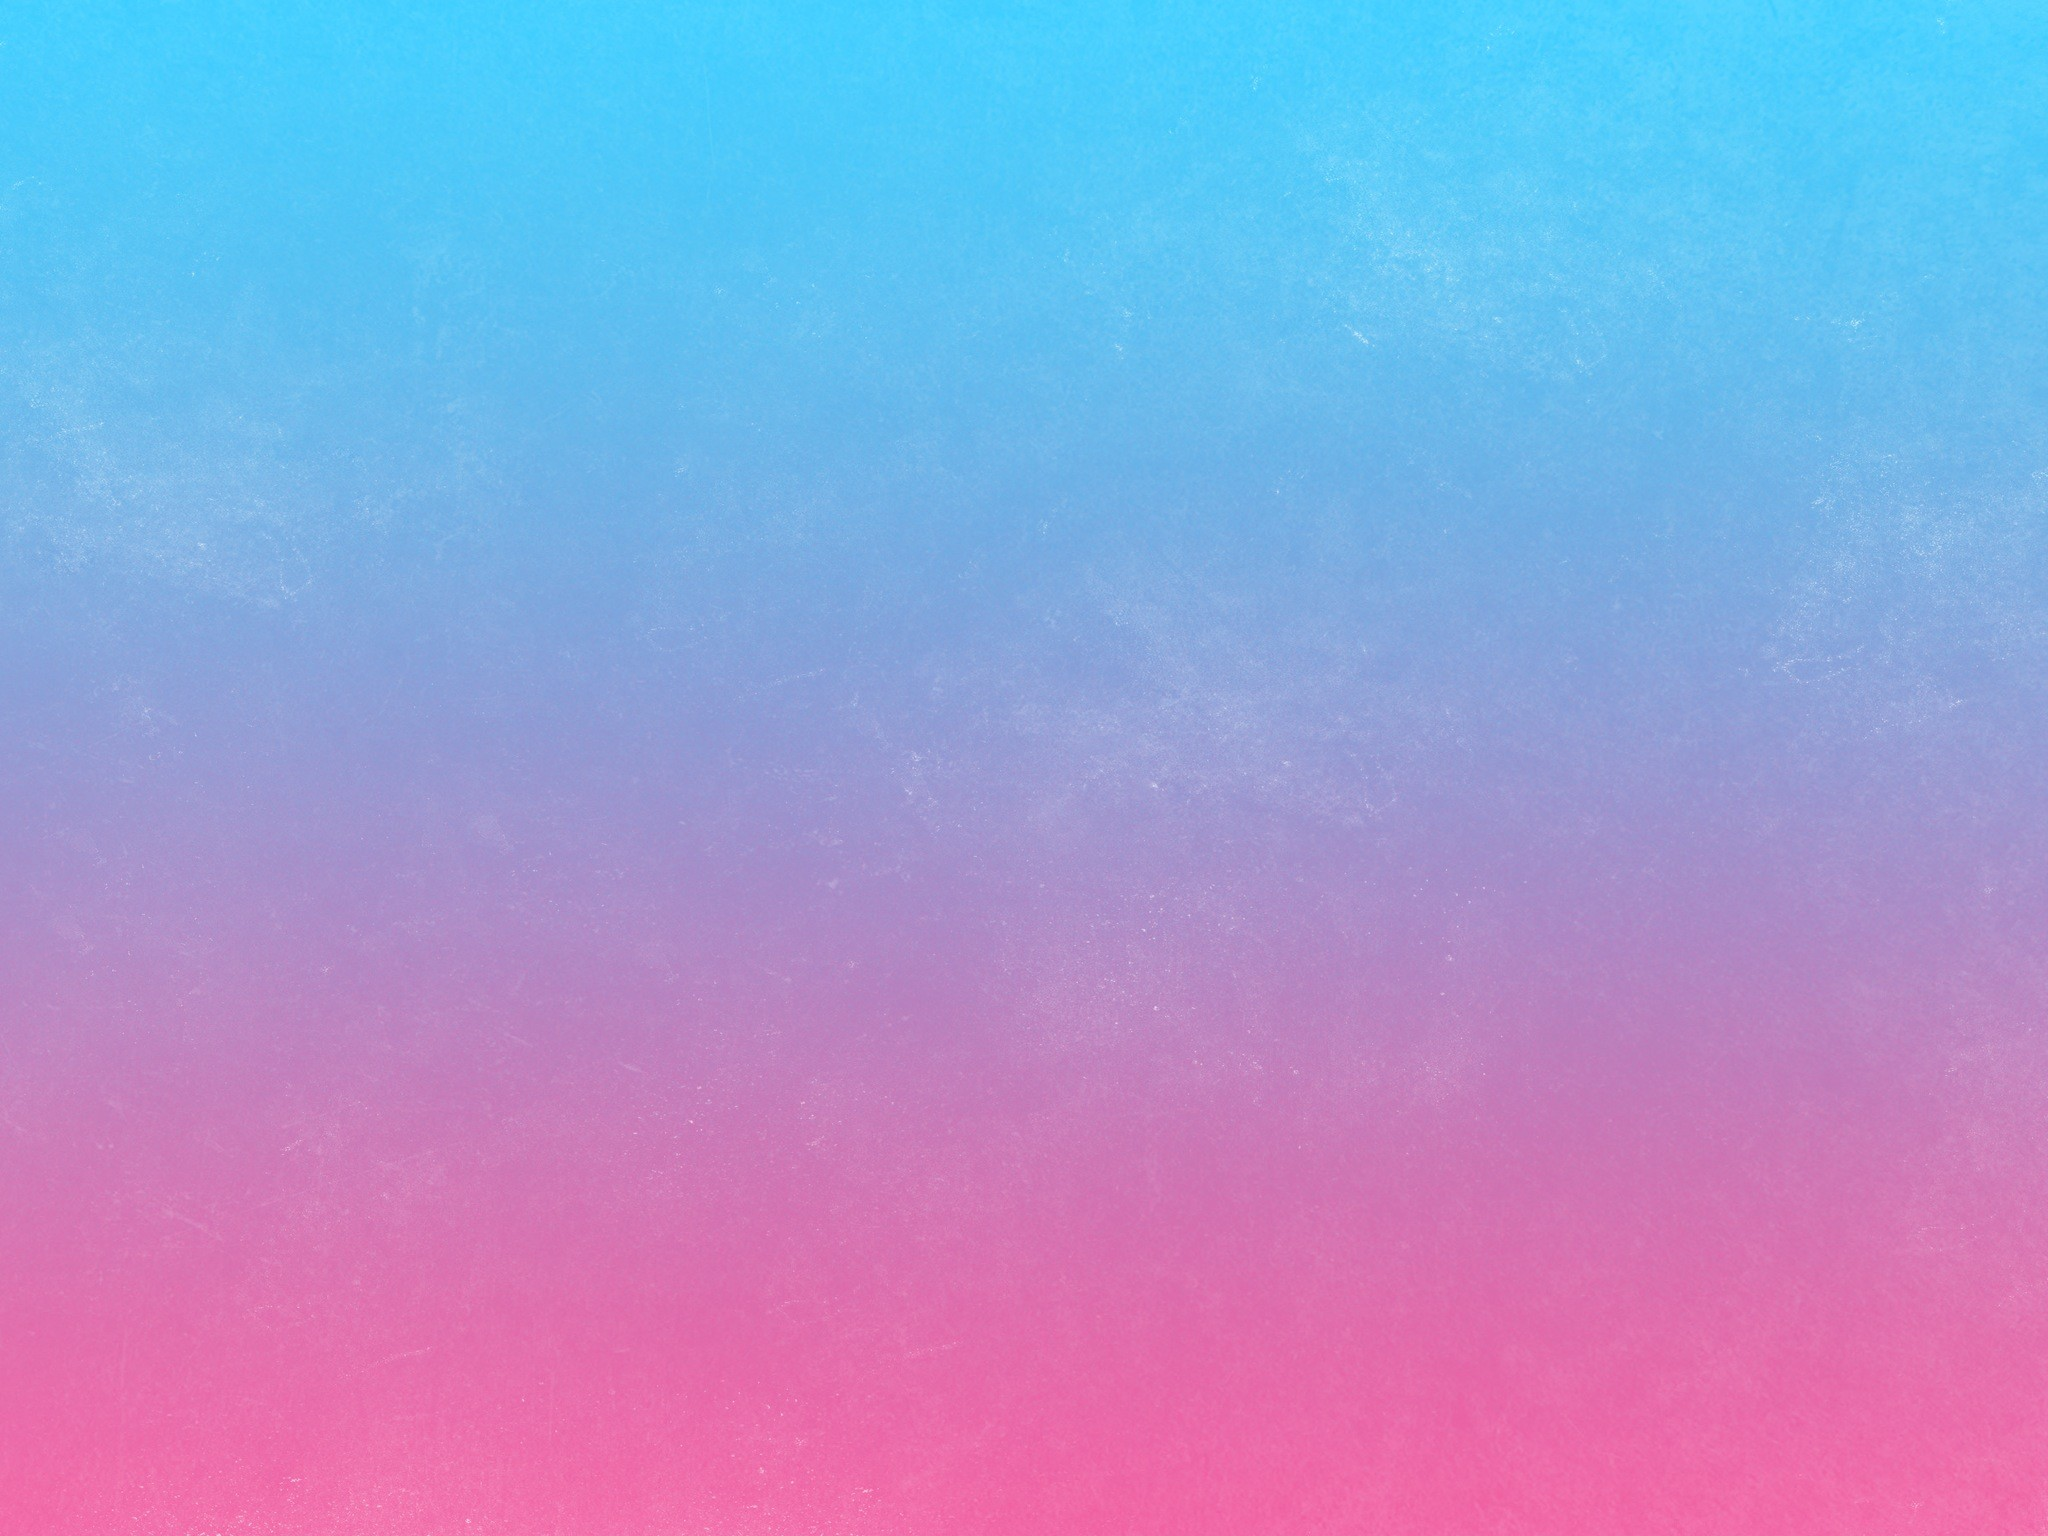 2048x1536 Light Blue And Pink Wallpaper, Light Blue And Pink Wallpapers for